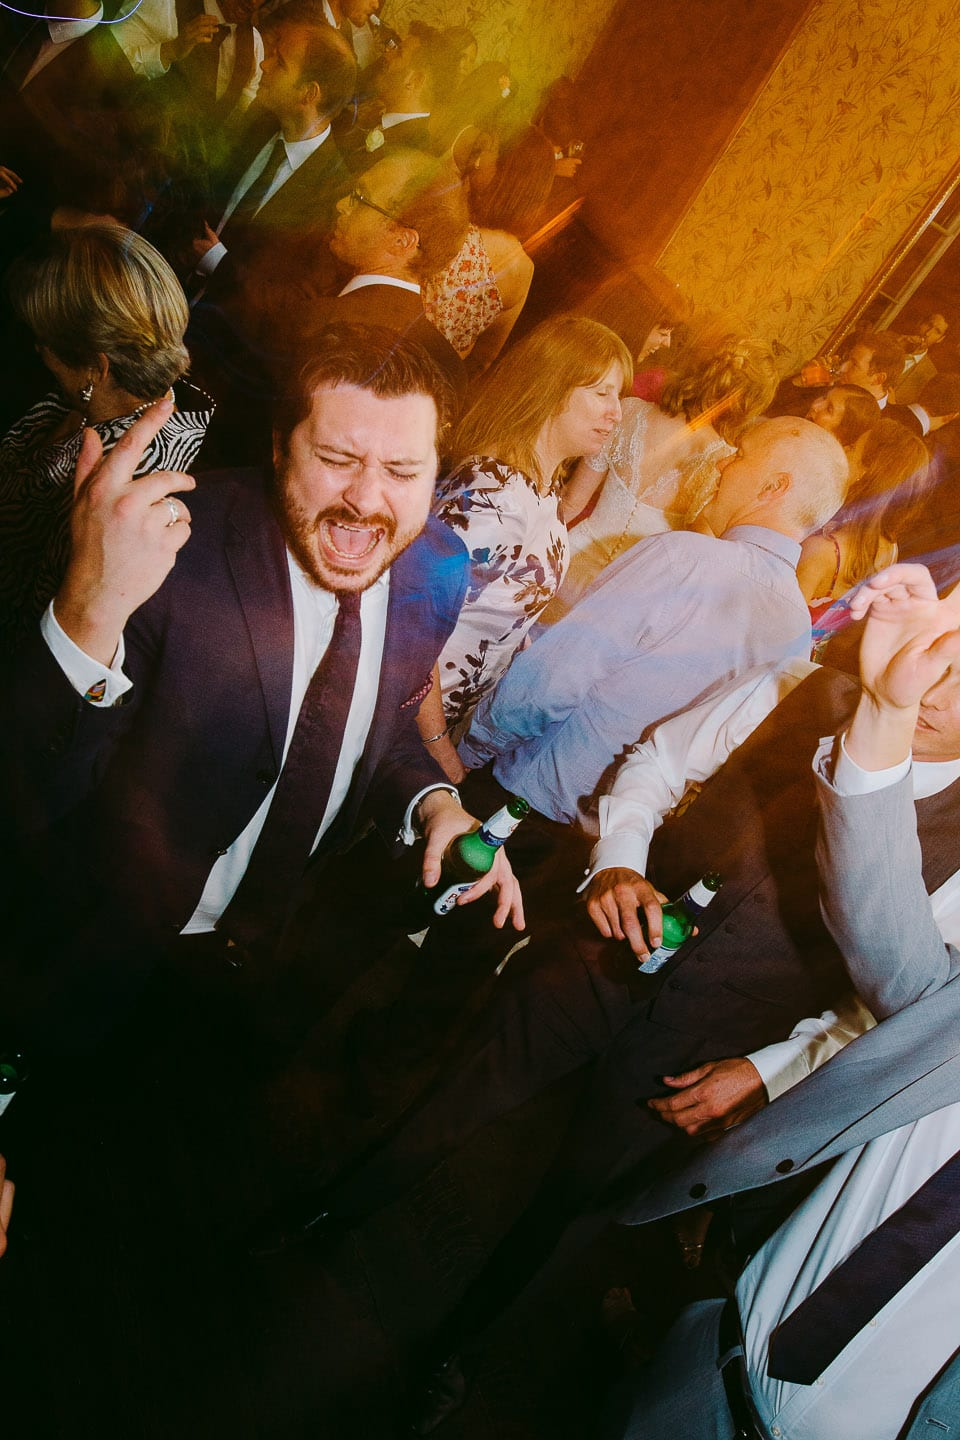 A guest sings energetically during the wedding party